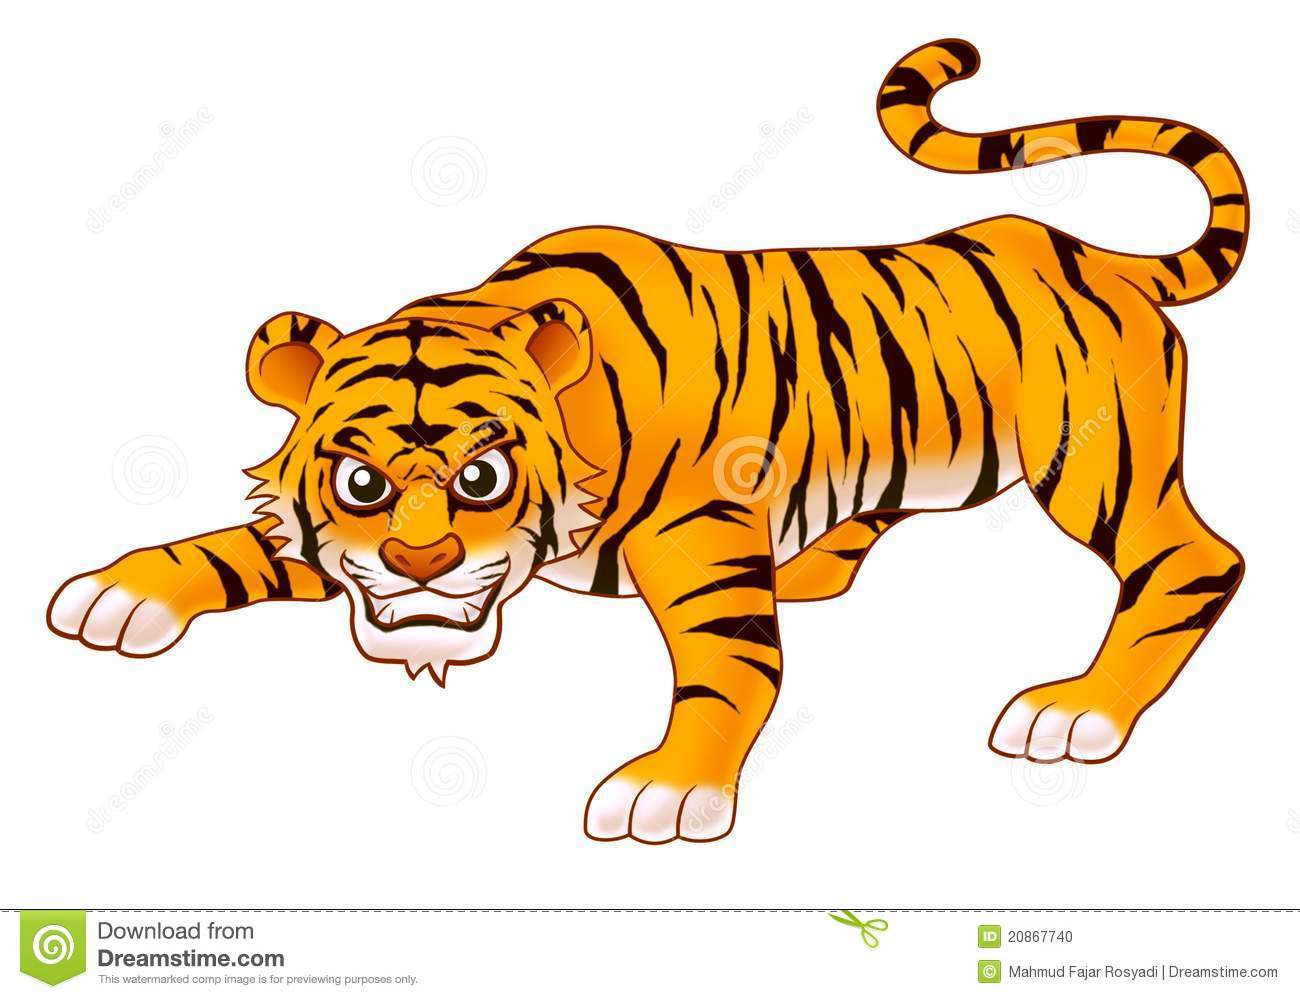 Tiger cartoon illustration for kids.